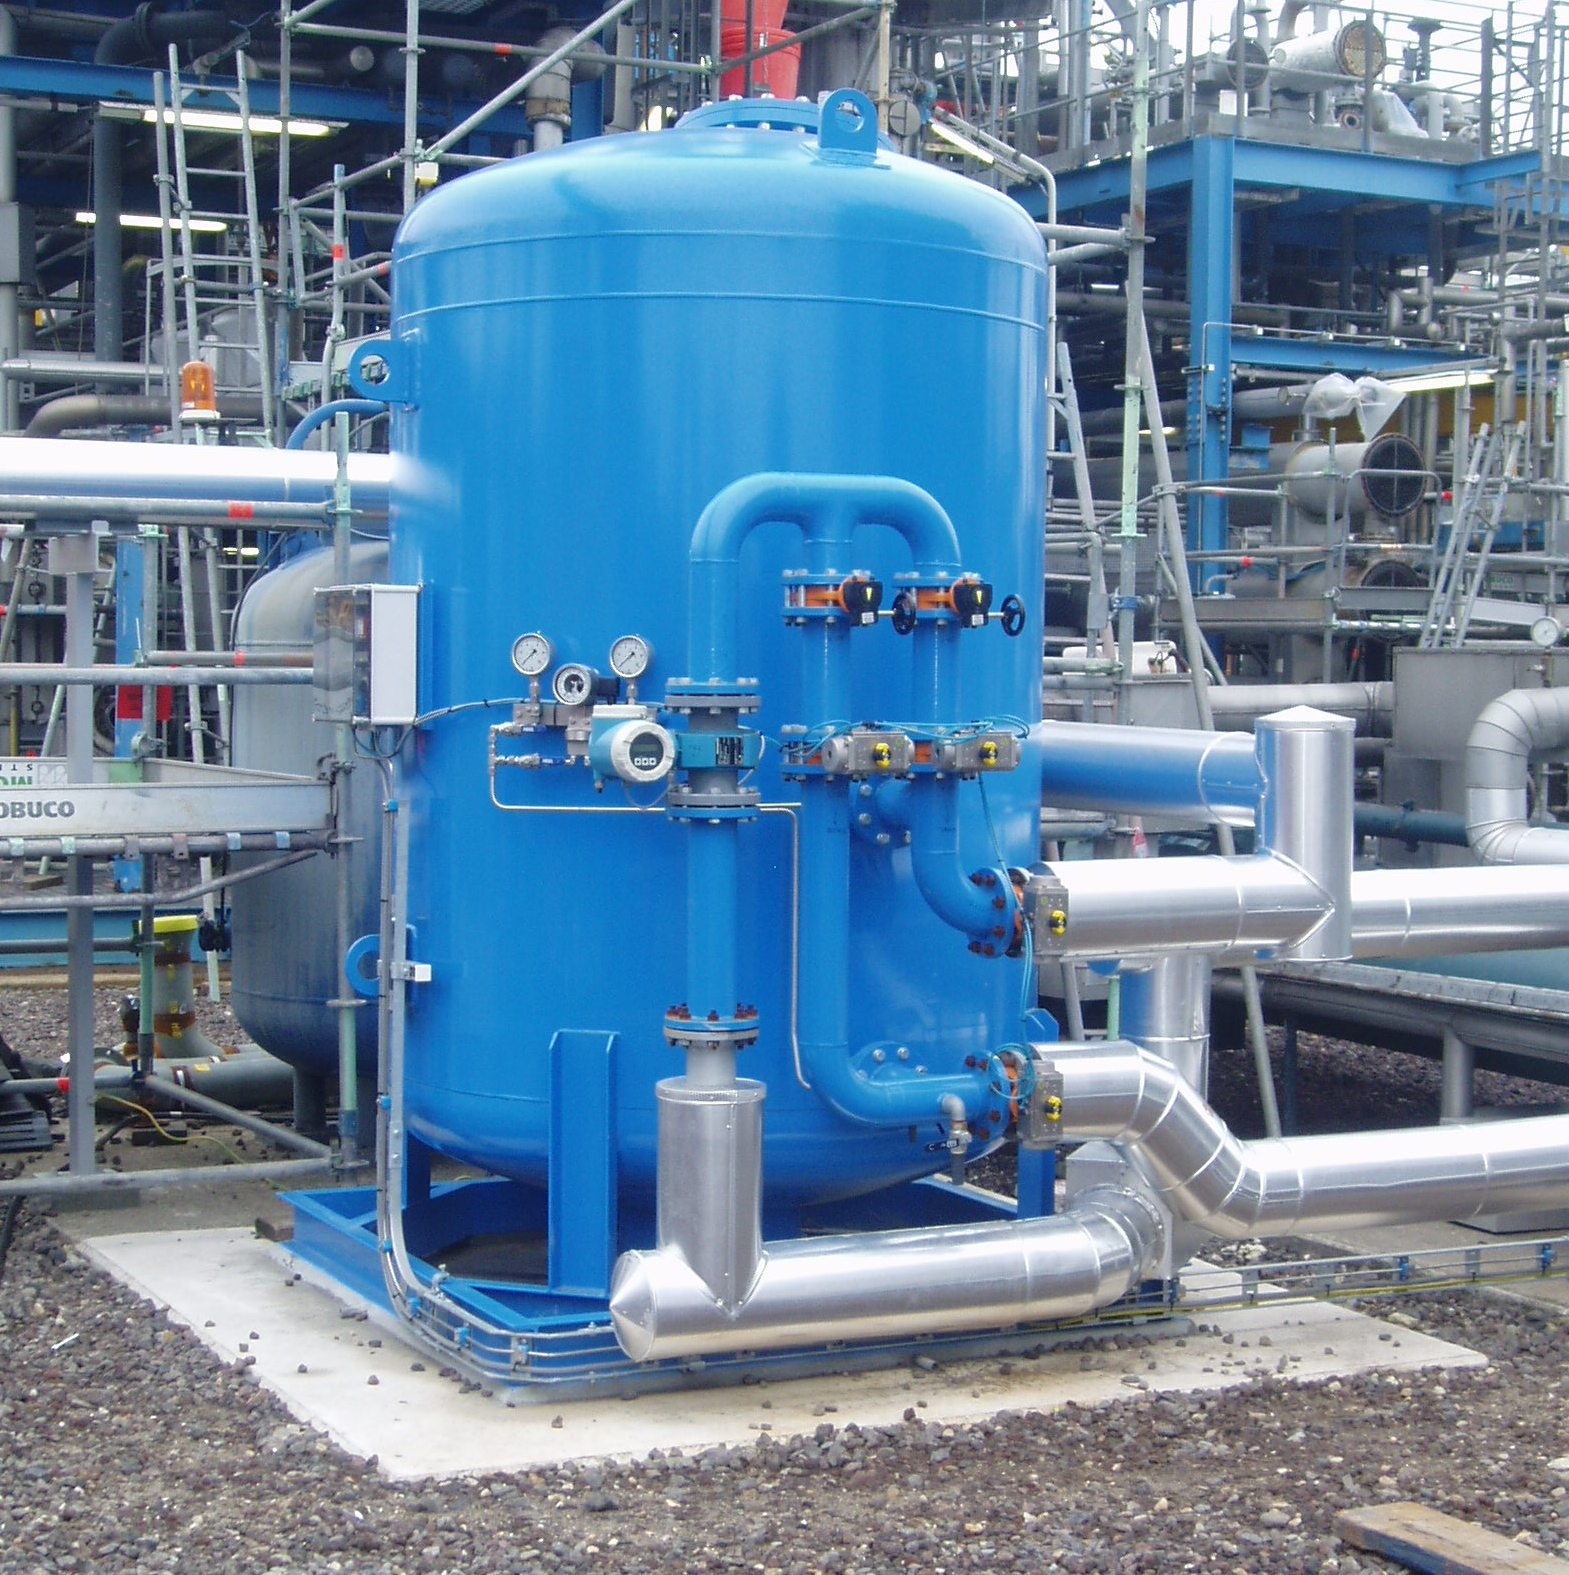 Sand filtration for Air Products Rozenburg (Rotterdam Botlek